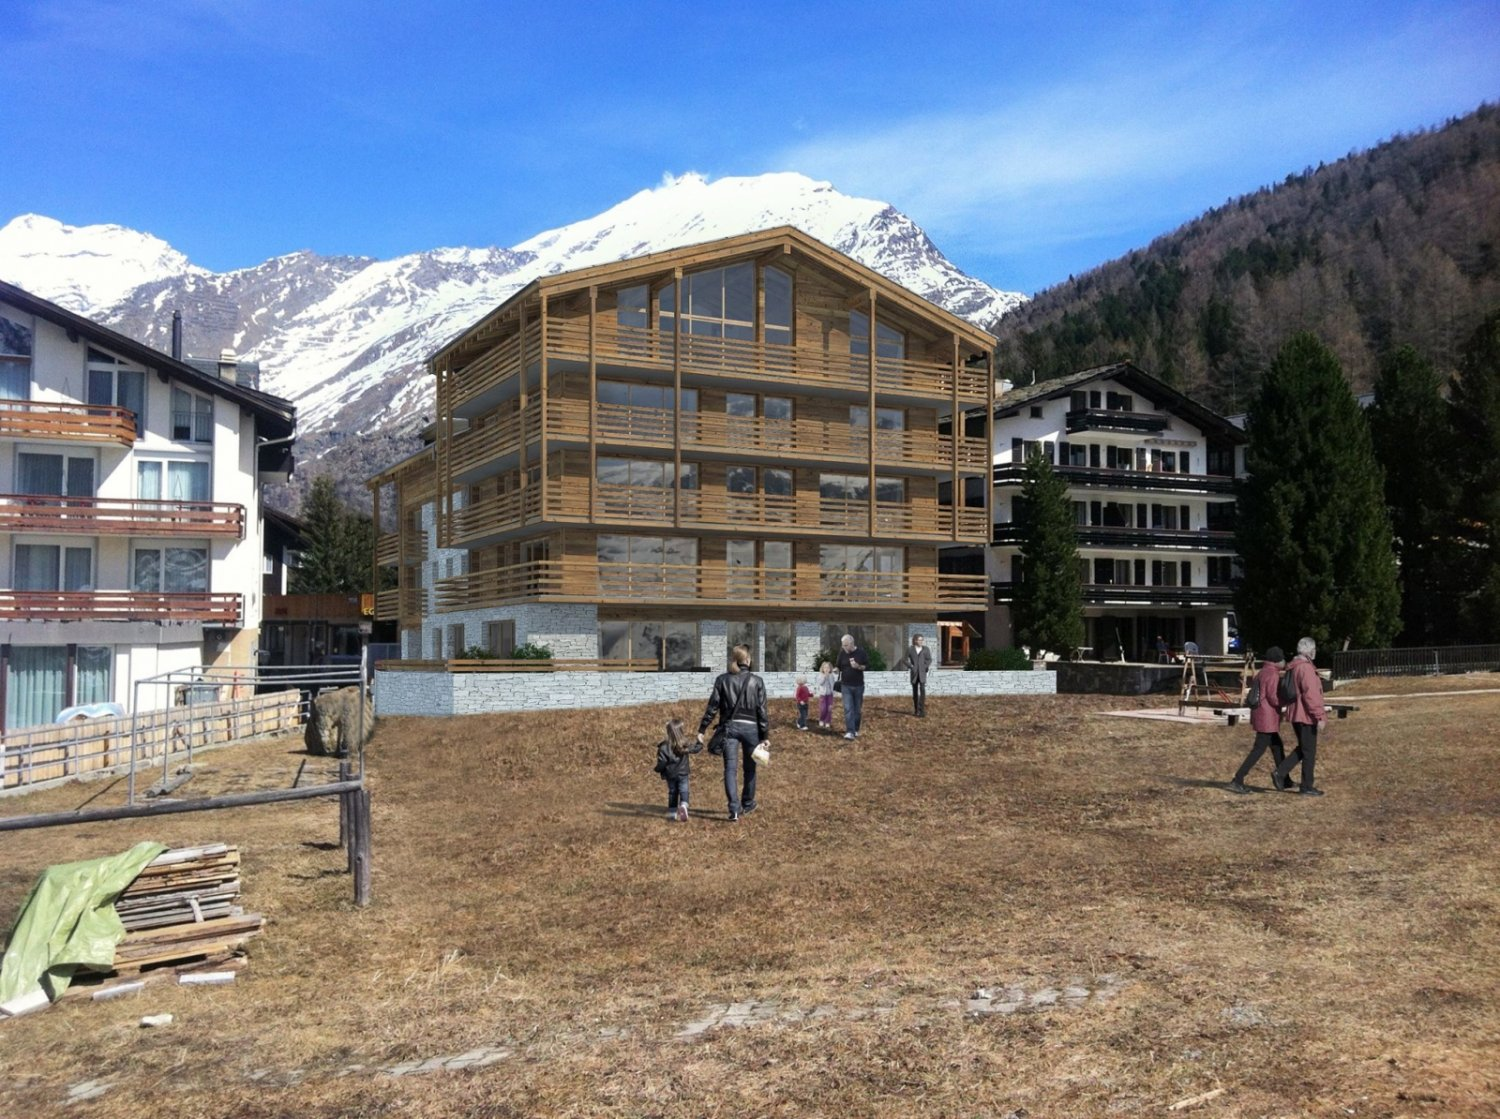 Hotel derby saas fee mls architekten sia ag for Derby hotels